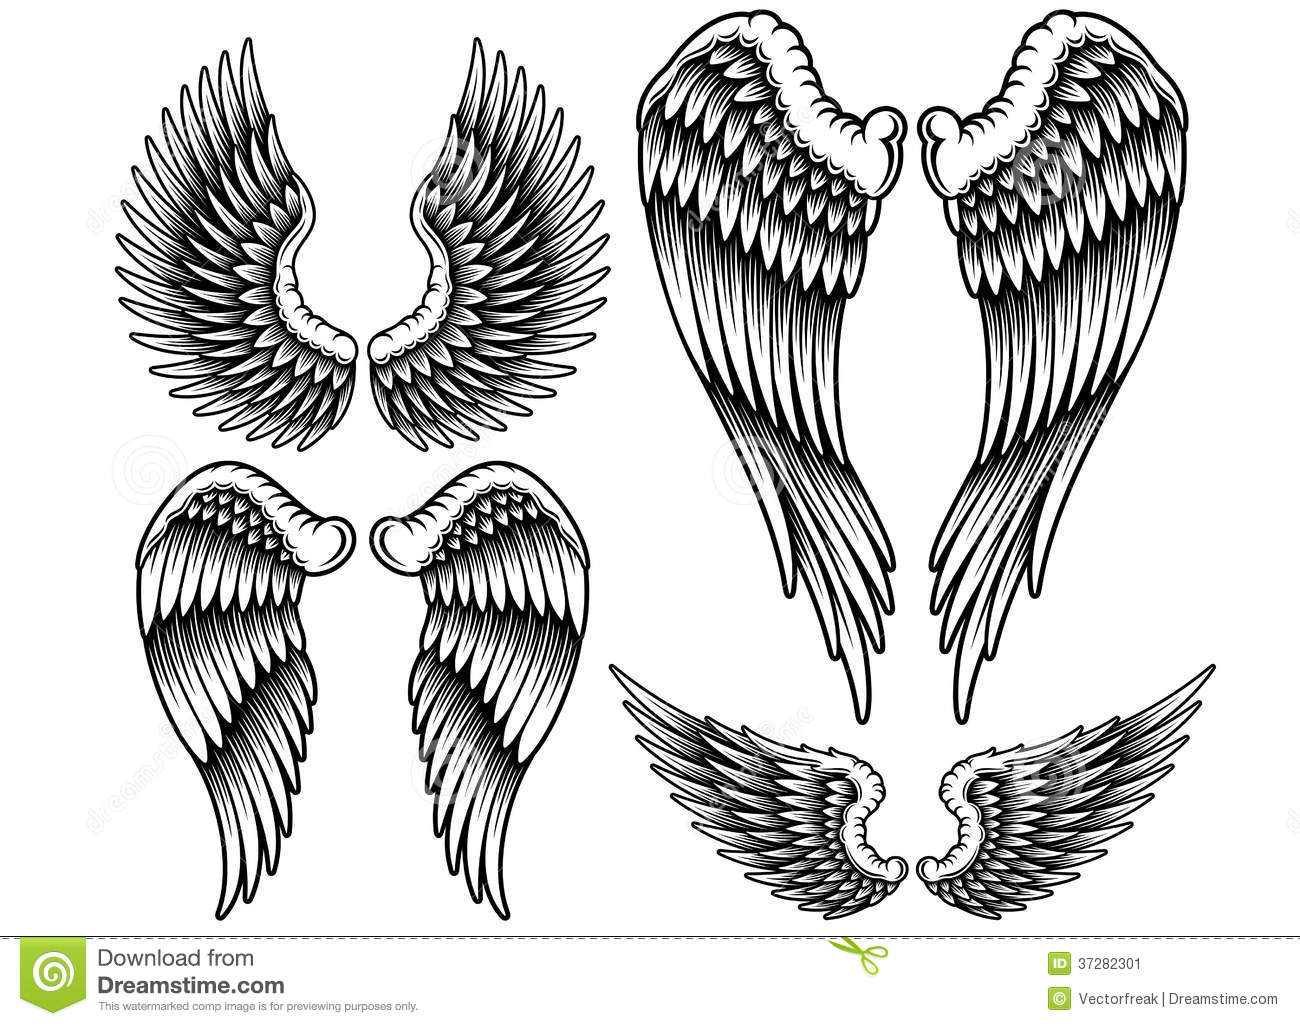 Fully editable vector illustration set of wings on isolated white ...